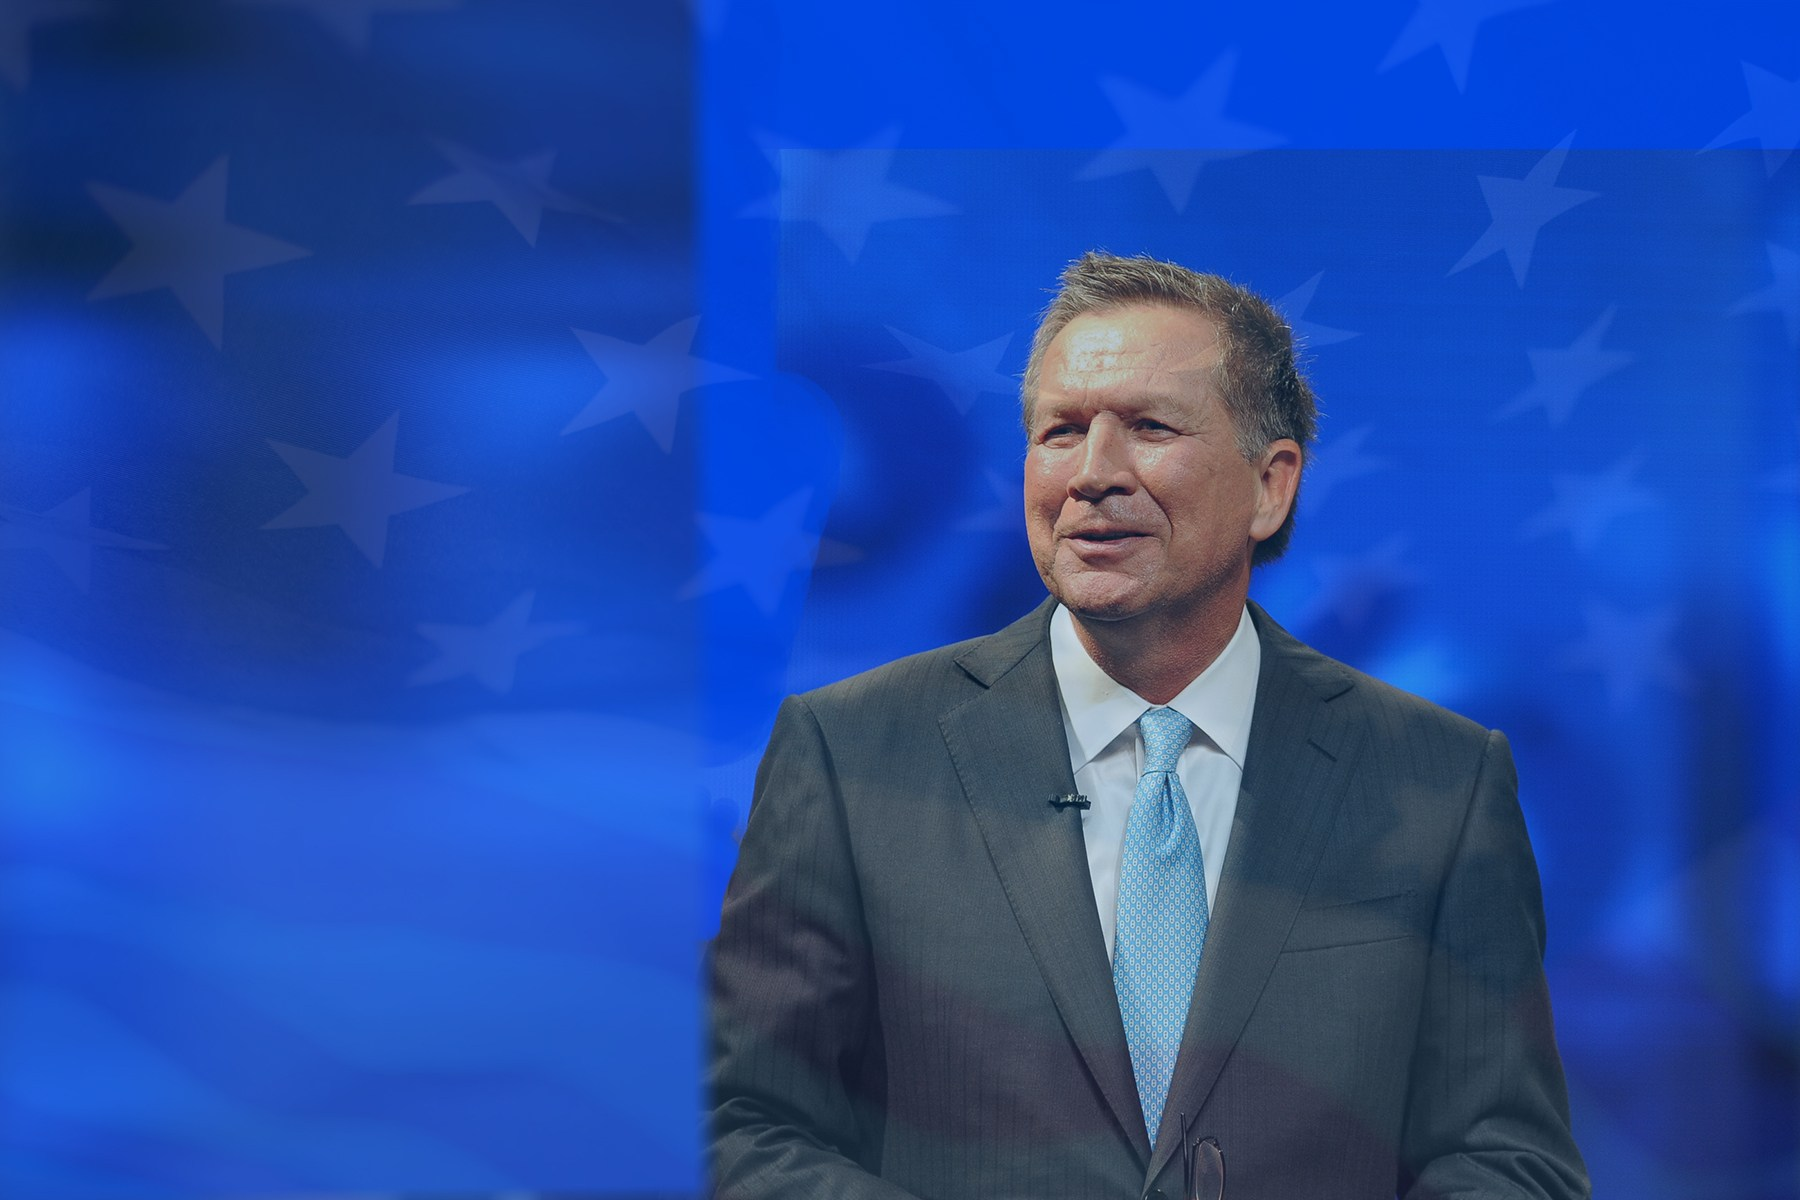 John kasich eoyr donationpage